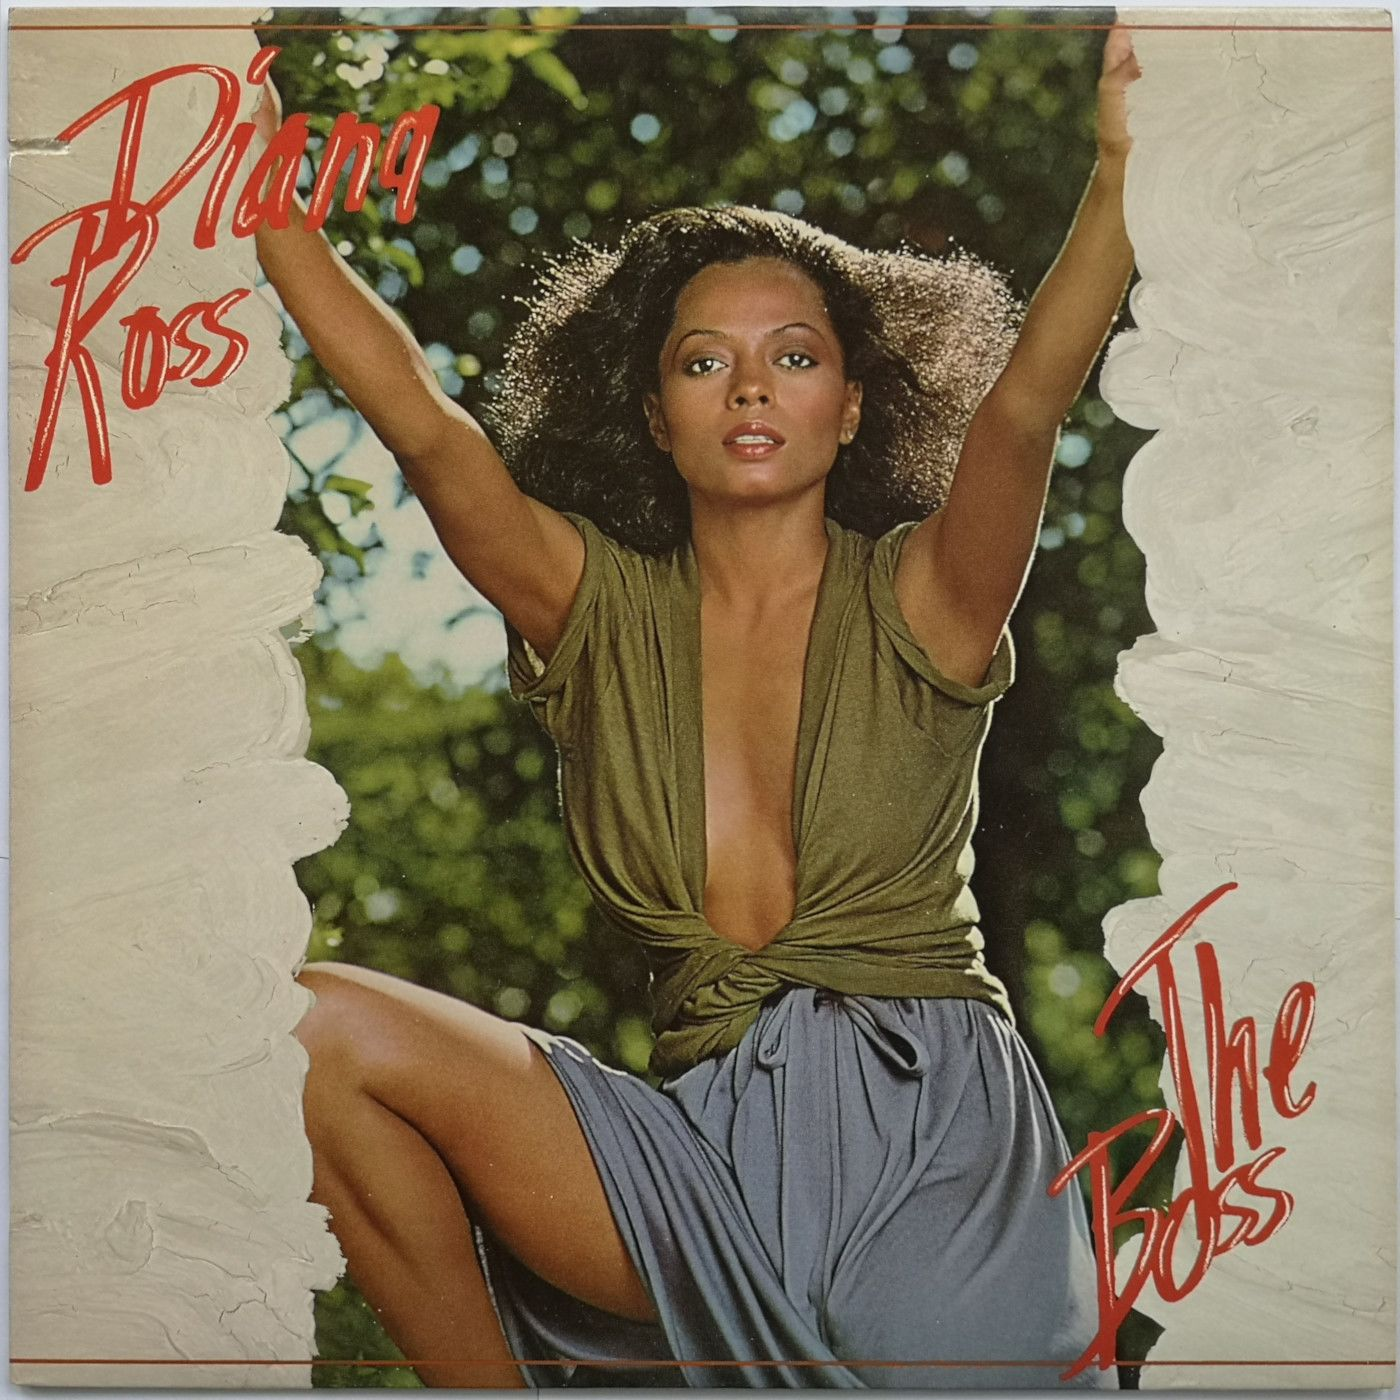 Diana Ross The Boss LP undefined